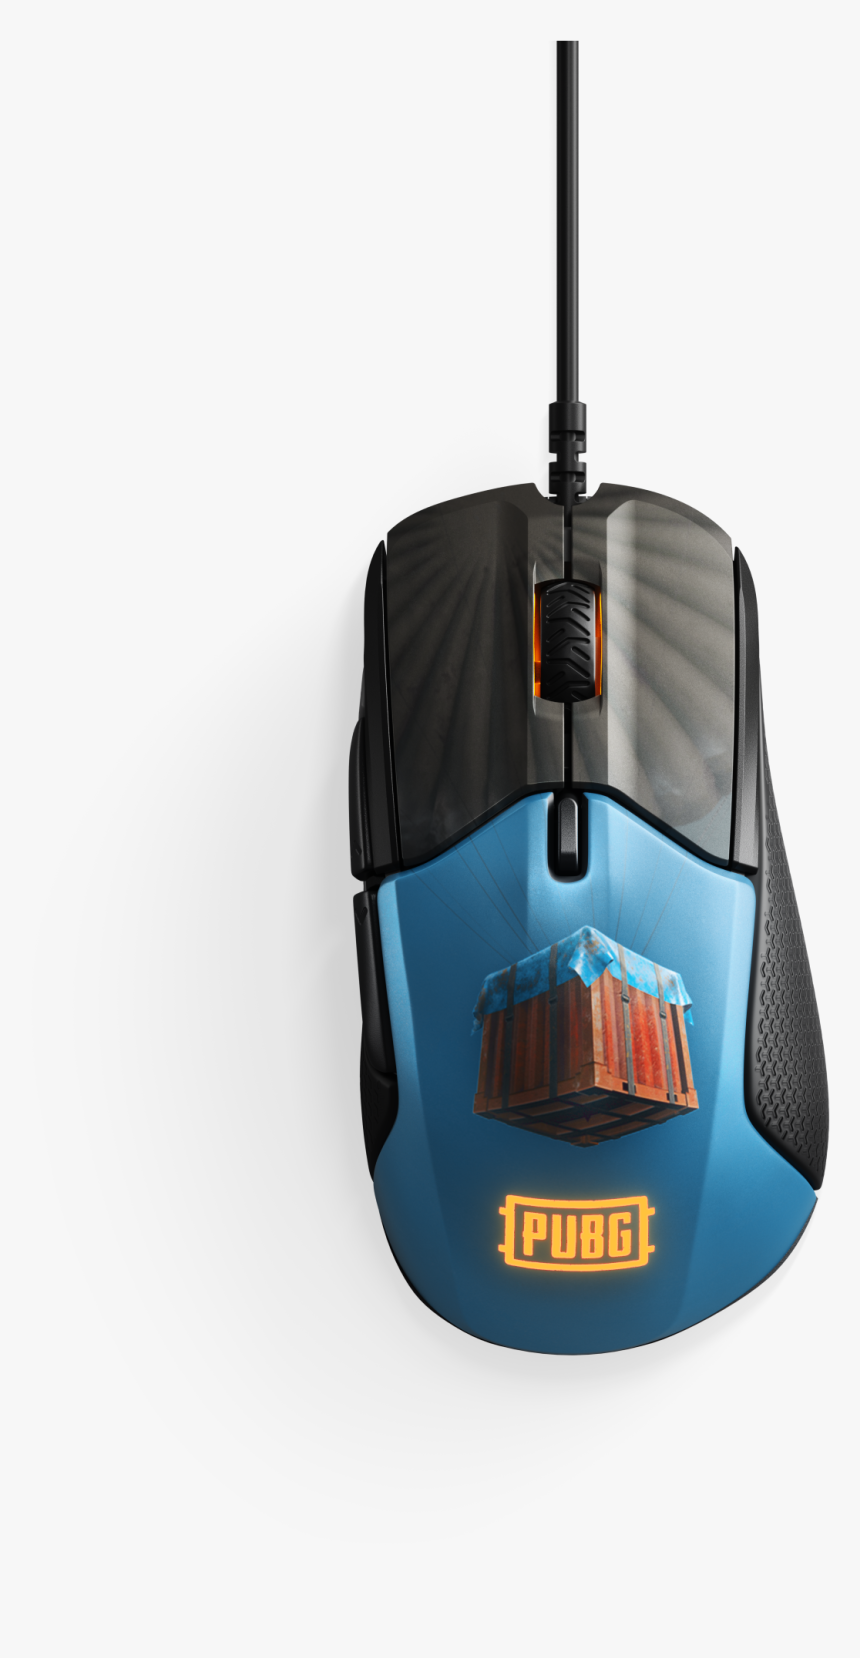 Check Out Images Of The New Peripherals Below - Pubg Mys, HD Png Download, Free Download